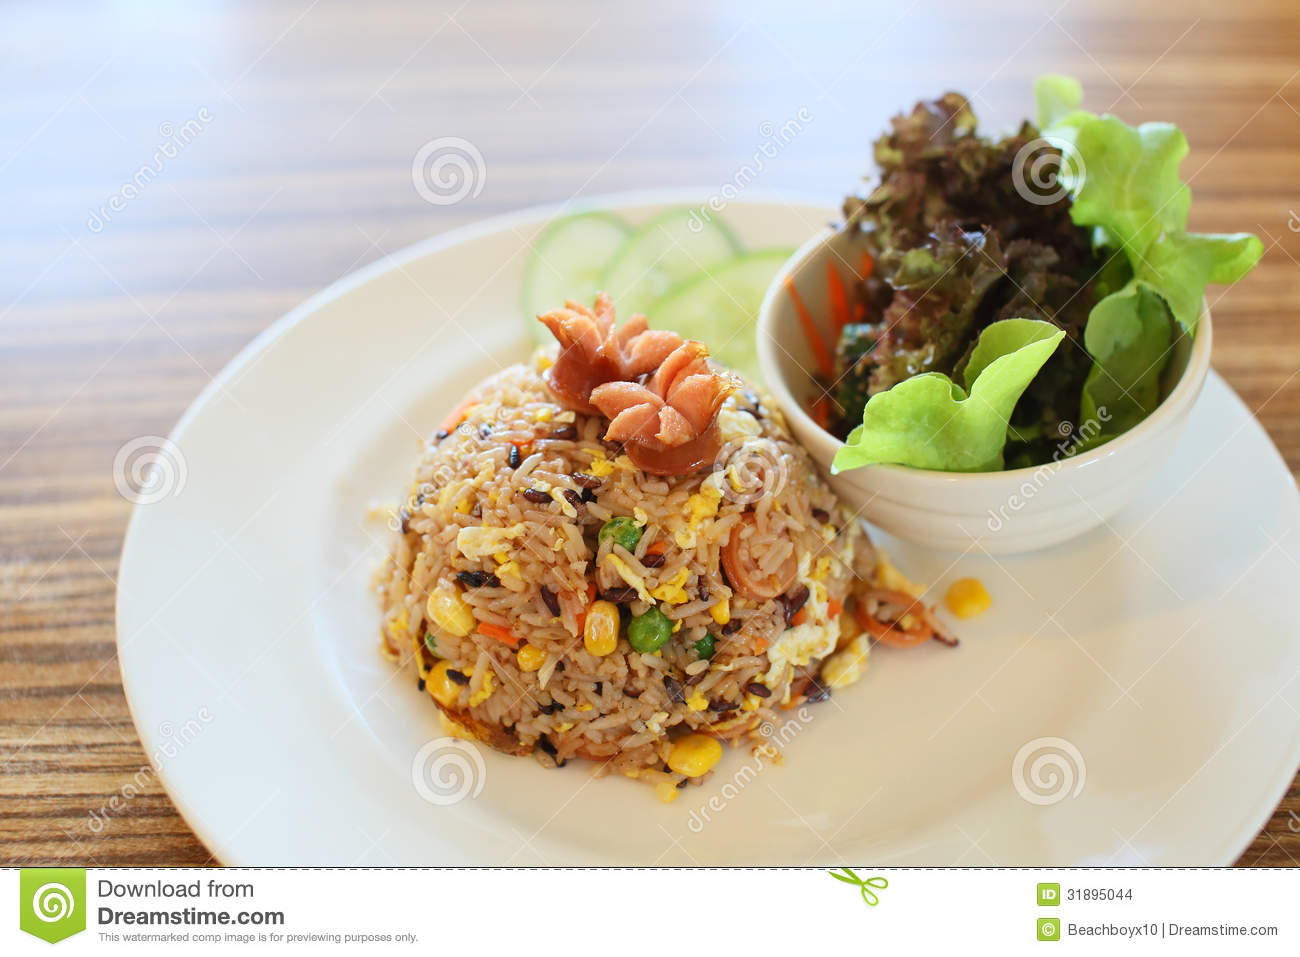 Stock Images: Sausage fried rice and Salad